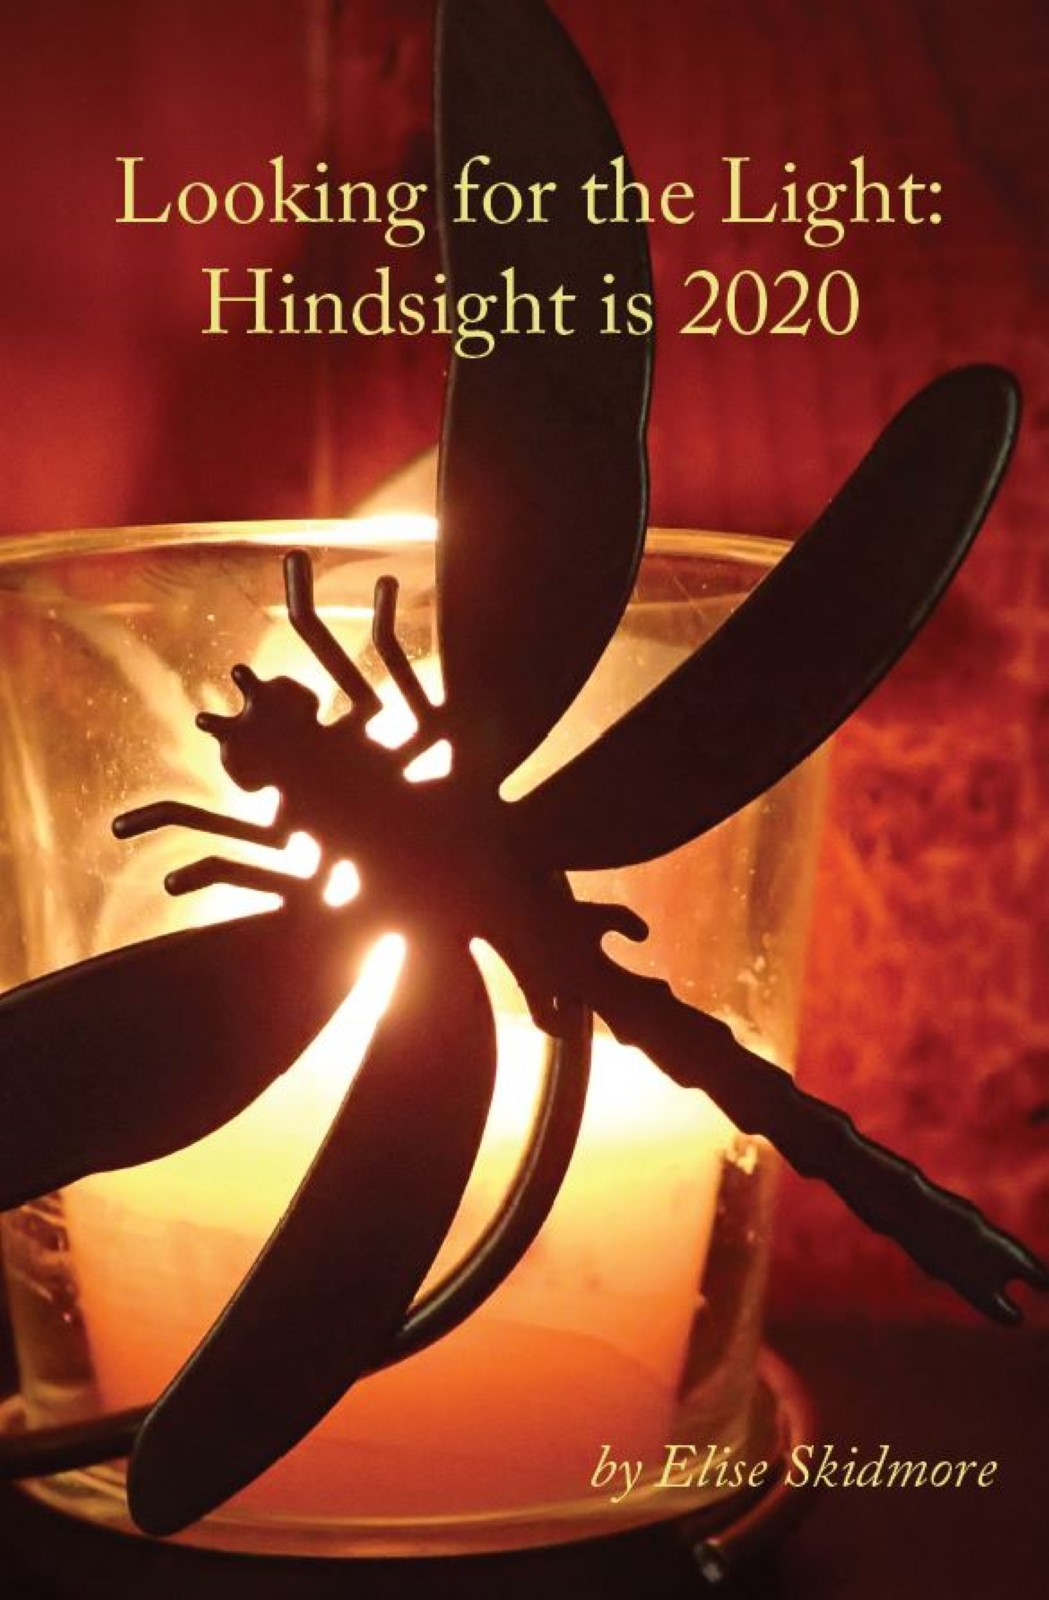 Looking for the Light: Hindsight is 2020 by Elise Skidmore - shows dragonfly over candle